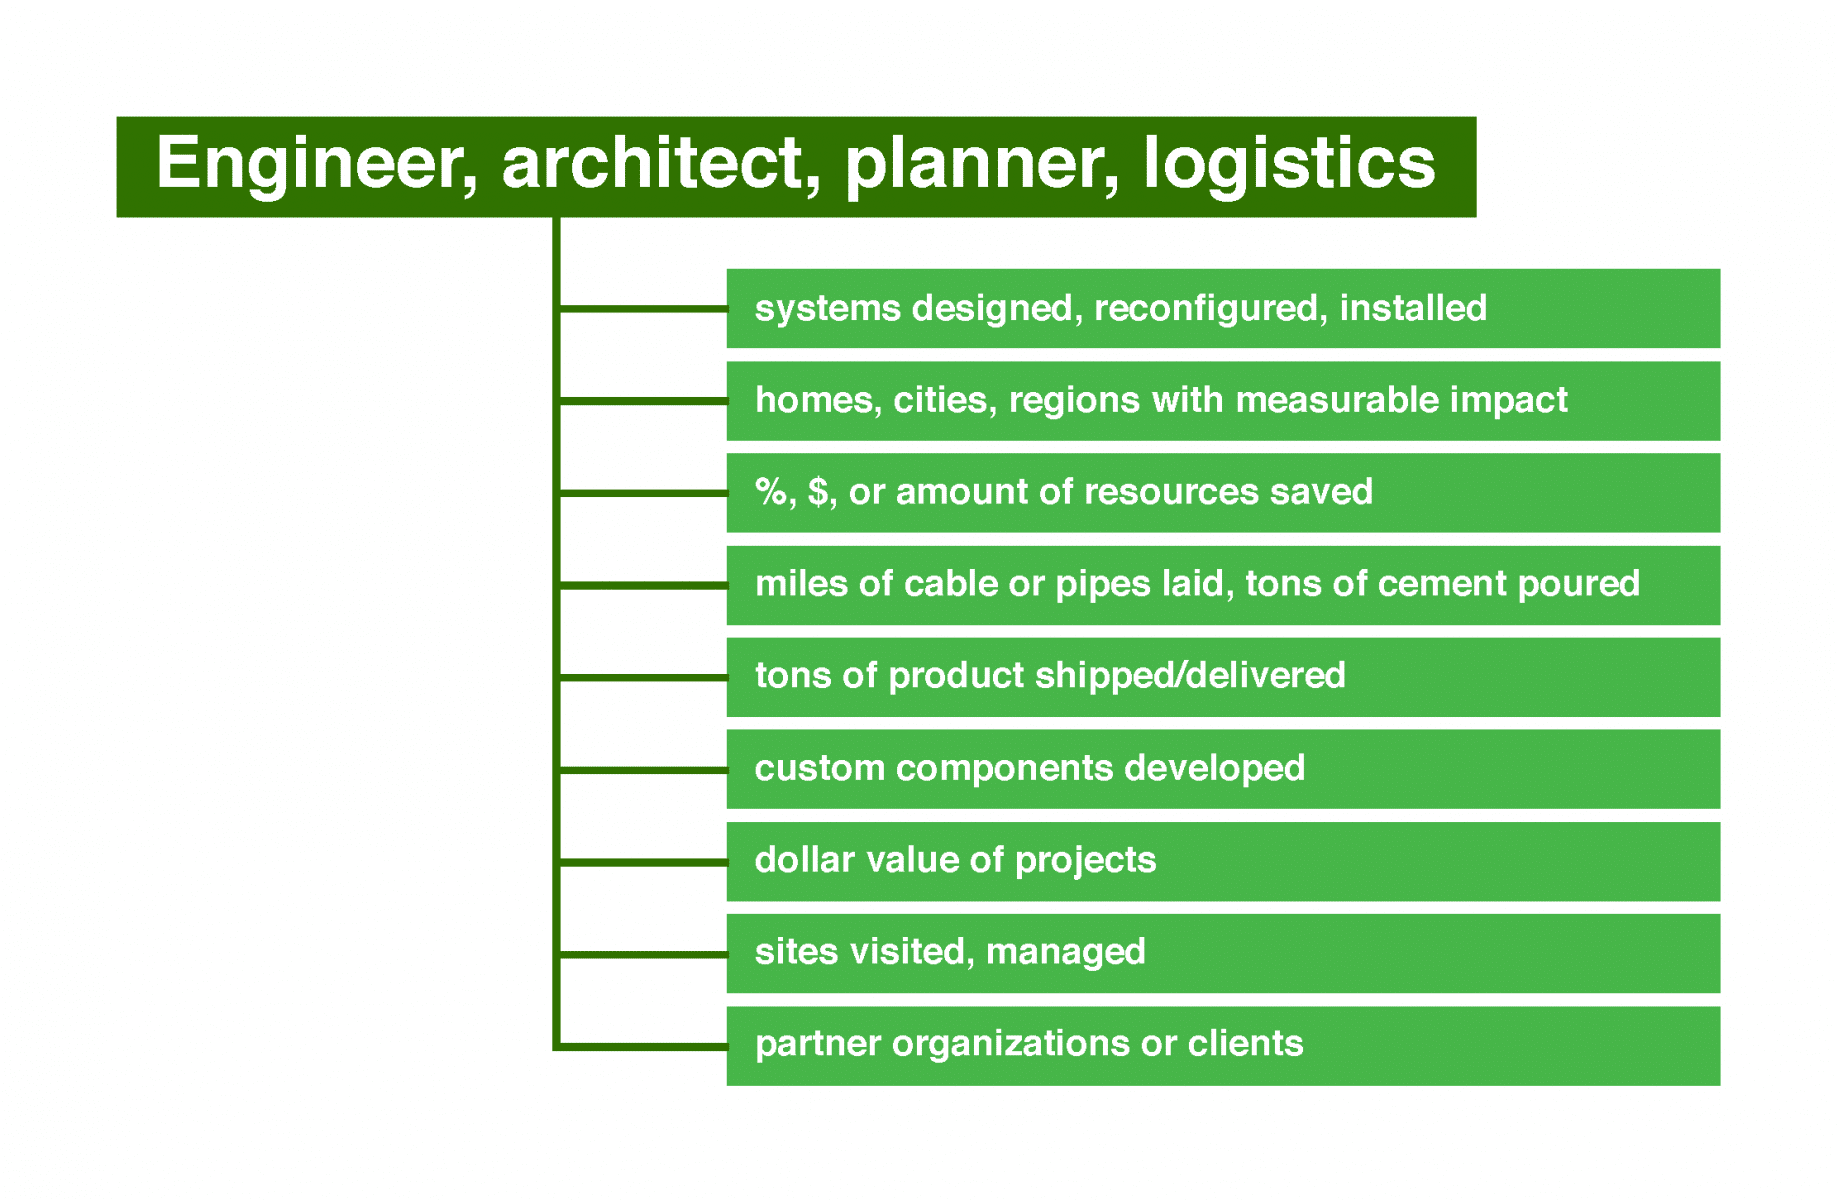 Potential numbers for engineers, architects, planners, and logistics